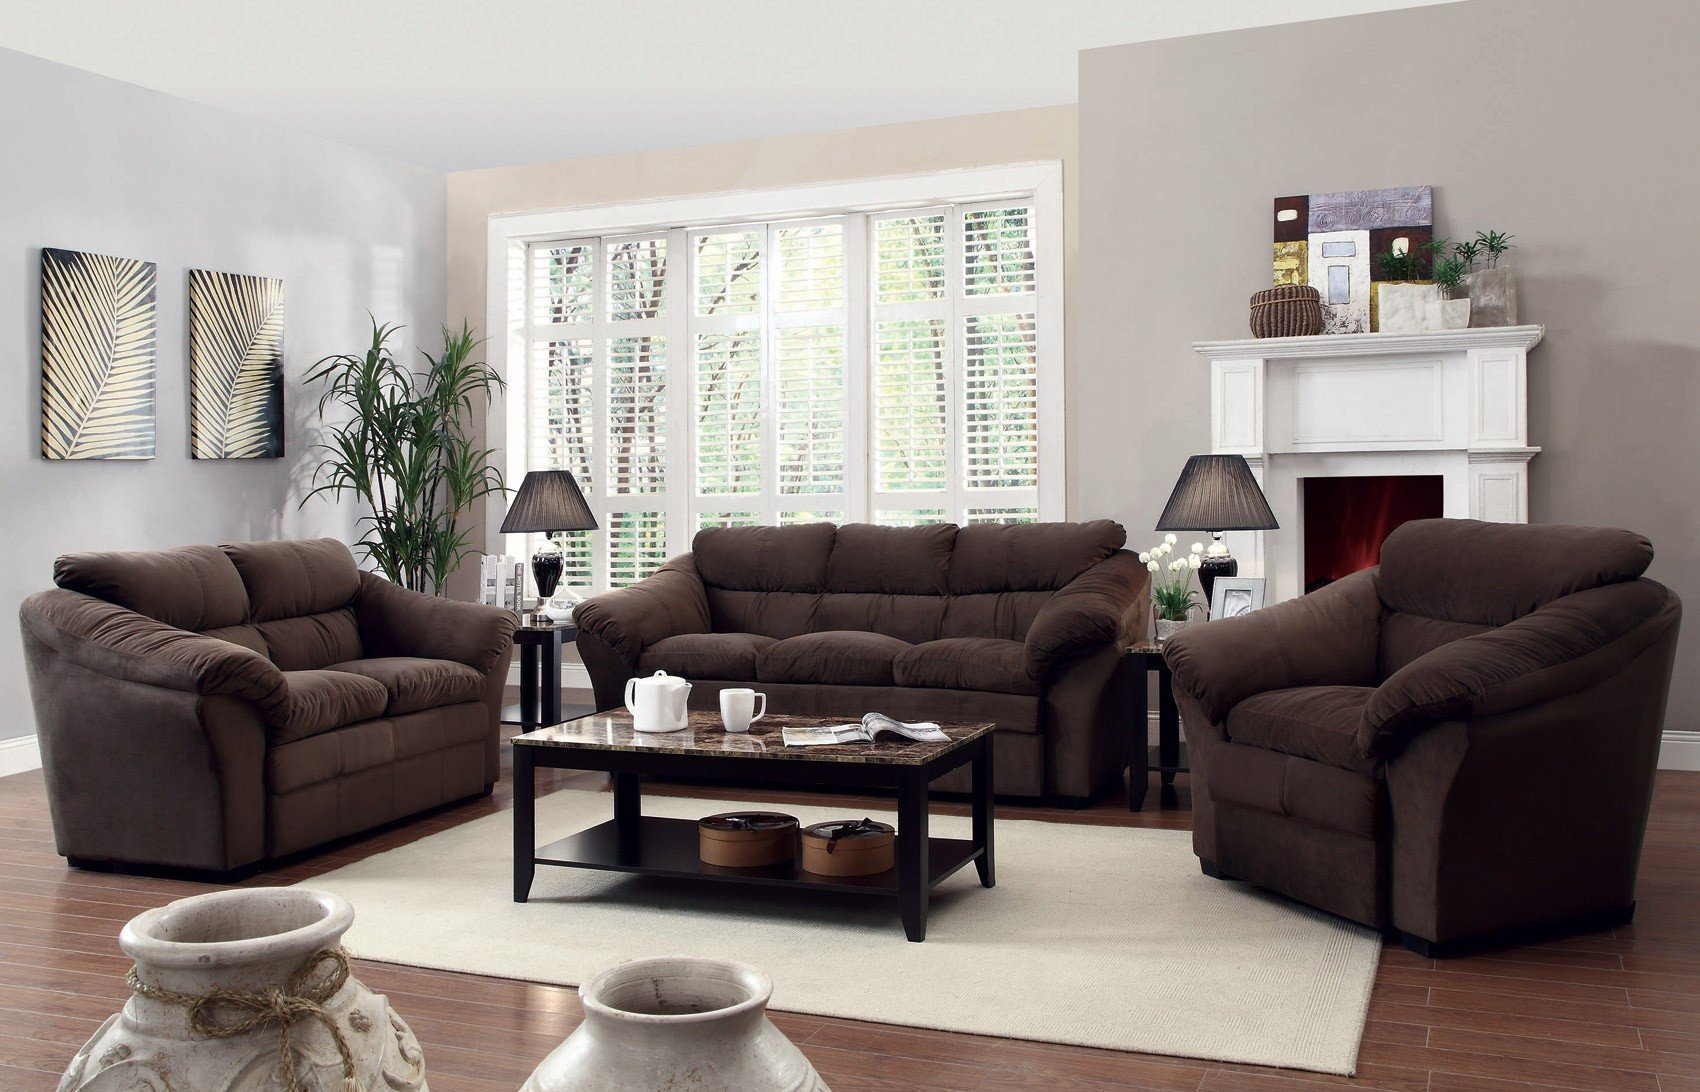 Contemporary Living Room Benches Arrangement Ideas for Modern Living Room Furniture Sets